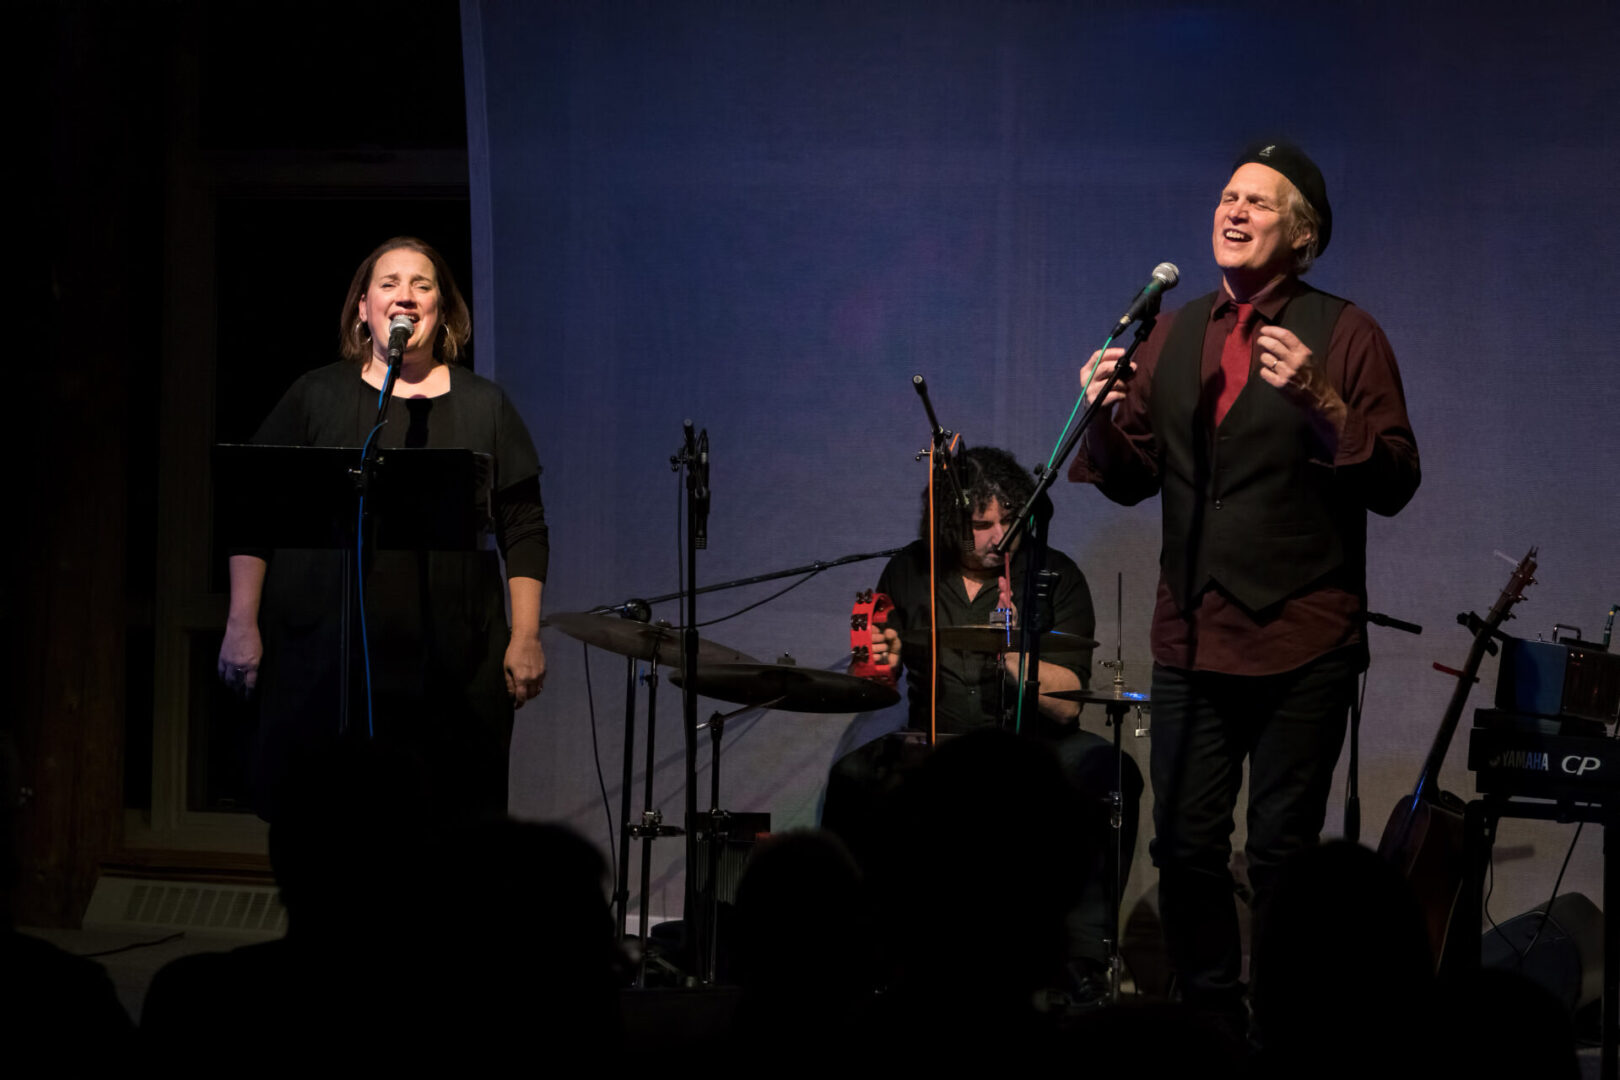 Greg Greenway performing live with two other musicians